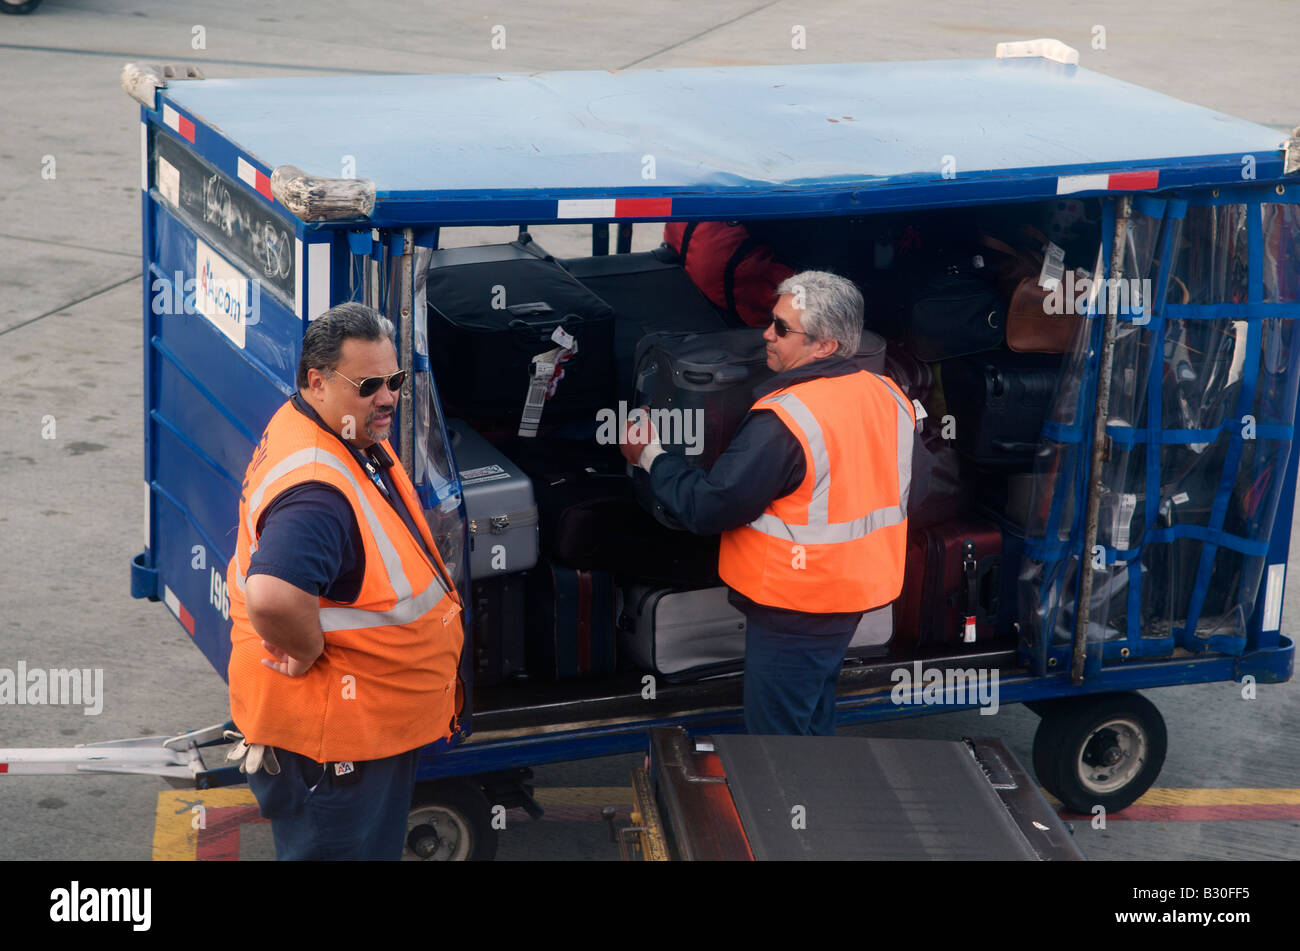 baggage handlers load suitcases on to a conveyer belt at Dallas Fort Worth International Airport in Texas, United - Stock Image